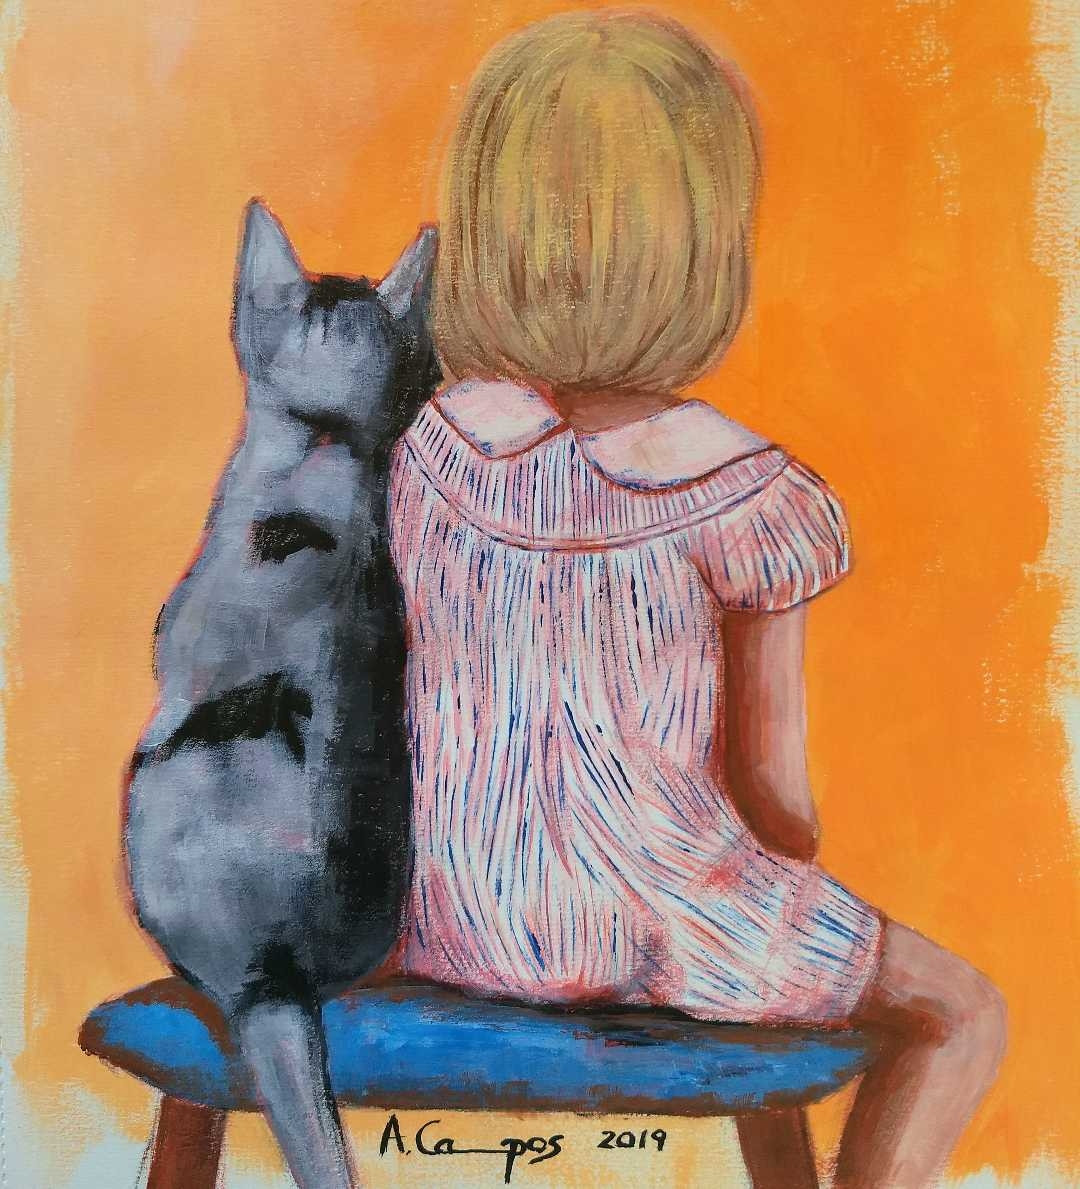 The girl and the cat